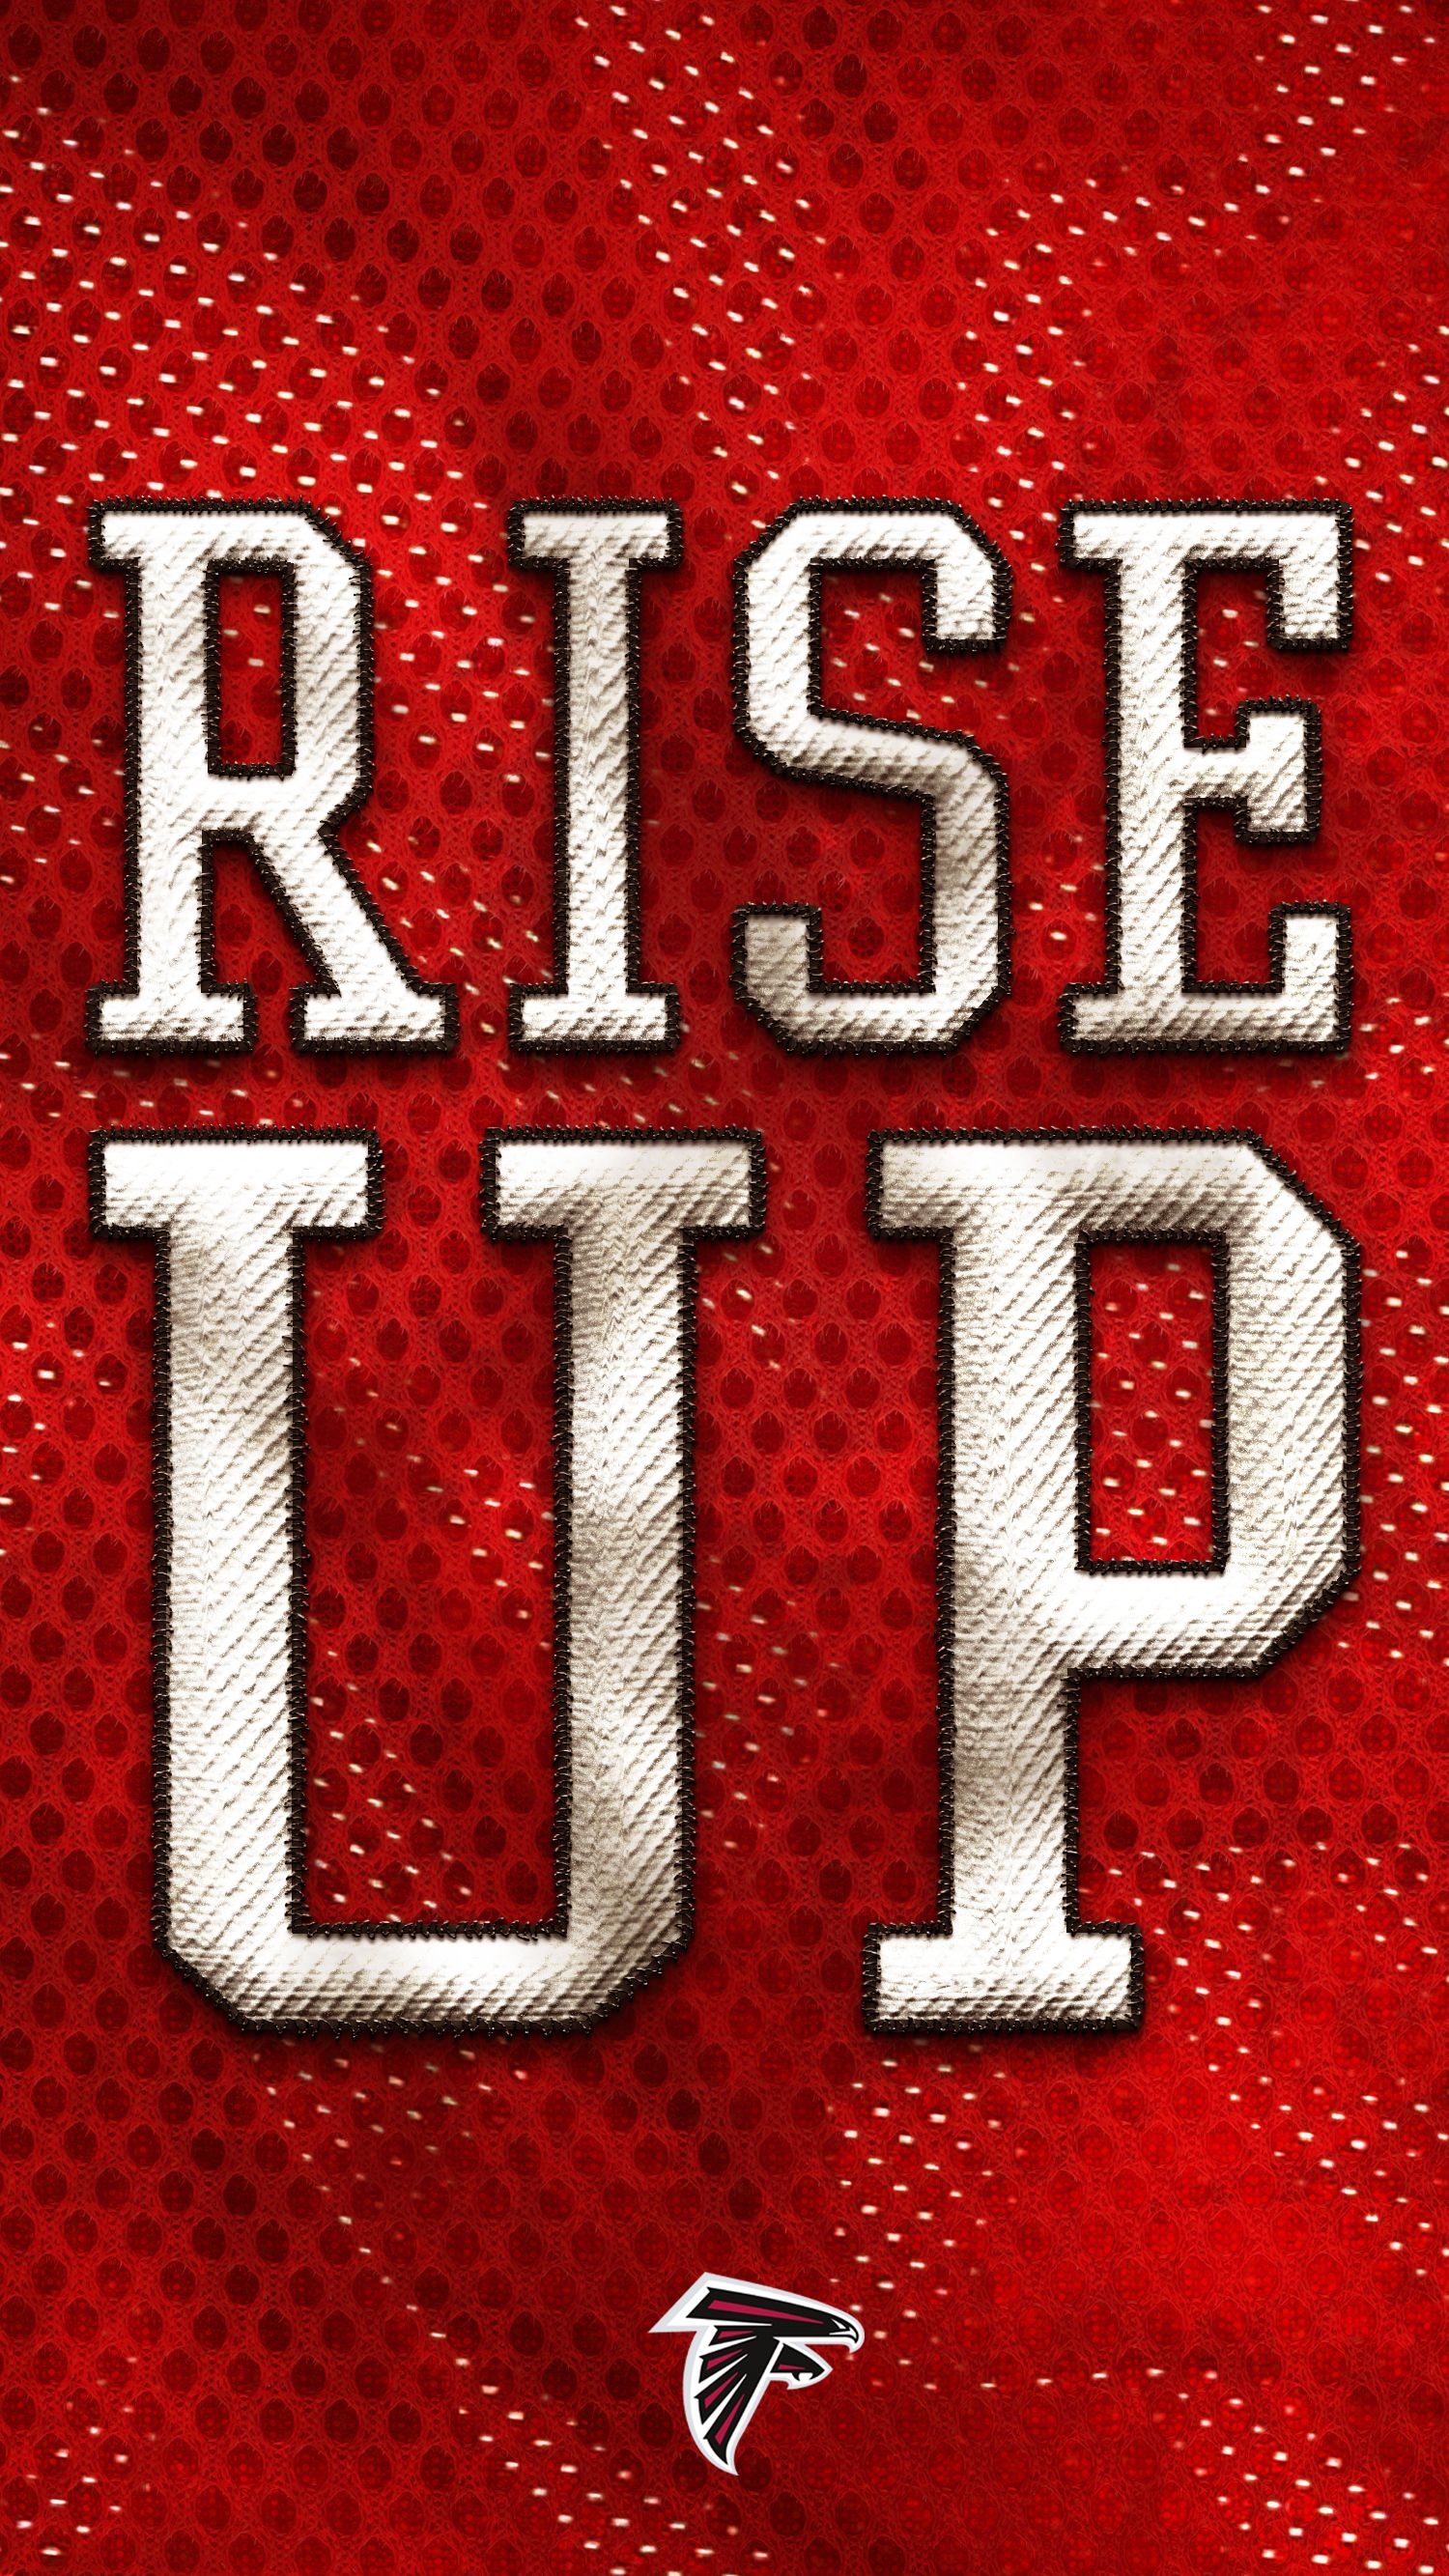 Atlanta Falcons Fans Rise Up And Grab This Smartphone Wallpaper And Nfl Mobile From Veriz Atlanta Falcons Atlanta Falcons Wallpaper Atlanta Falcons Football